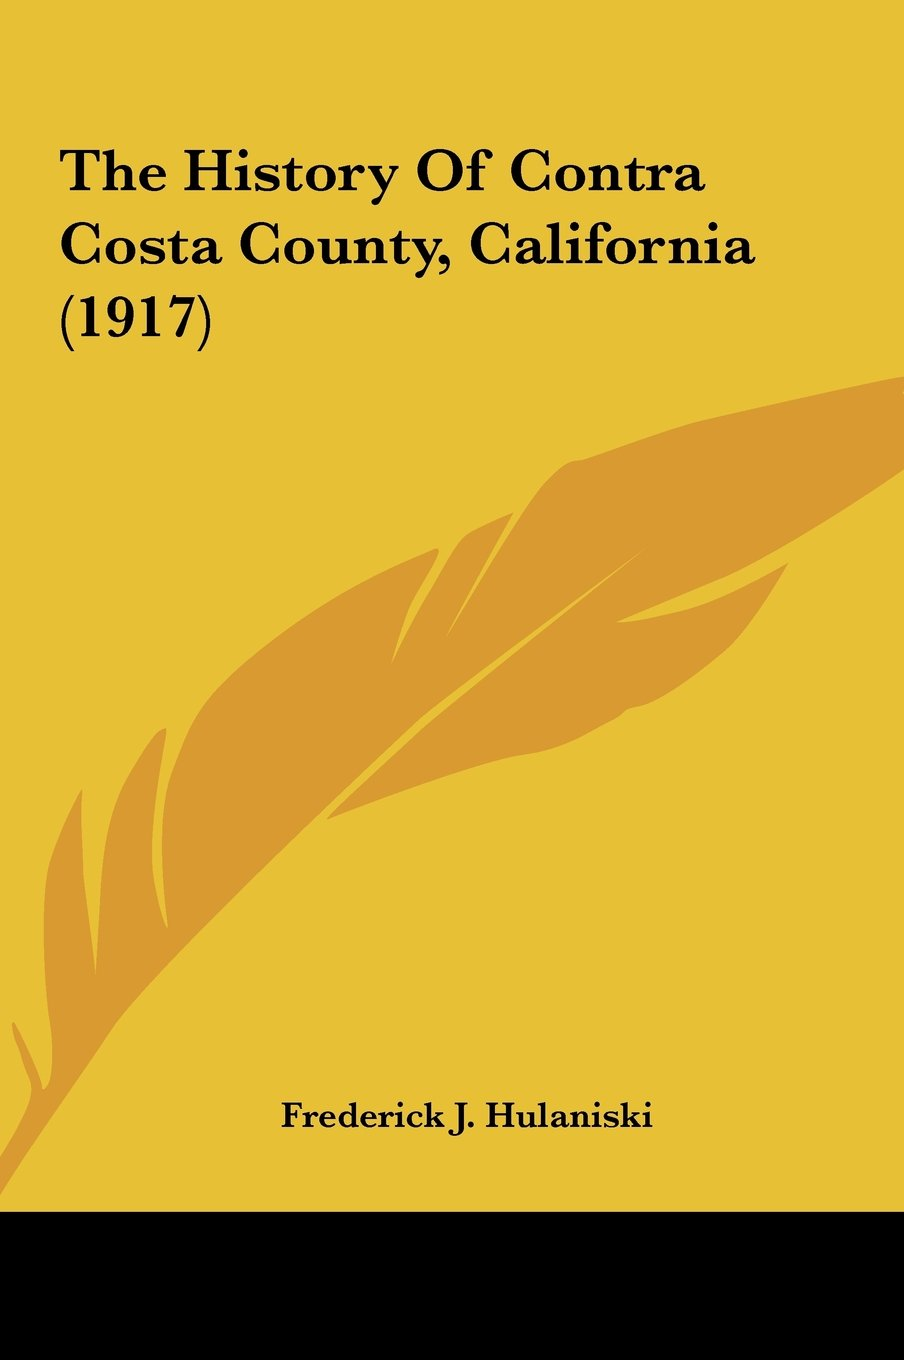 The History Of Contra Costa County, California (1917) pdf